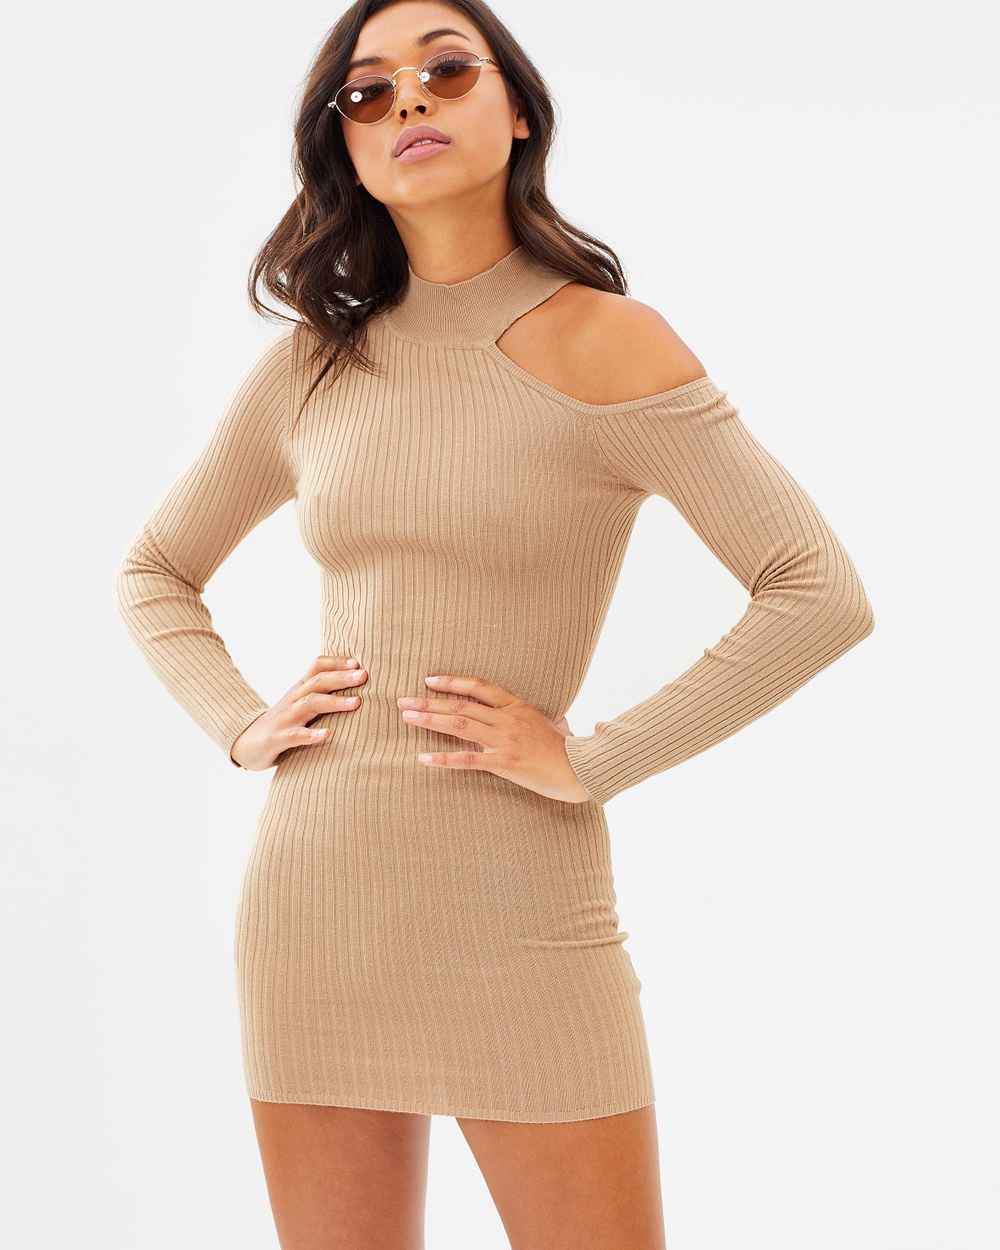 Missguided Cut Away Knitted Body Con Dress Bodycon Dresses Camel Cut-Away Knitted Body-Con Dress